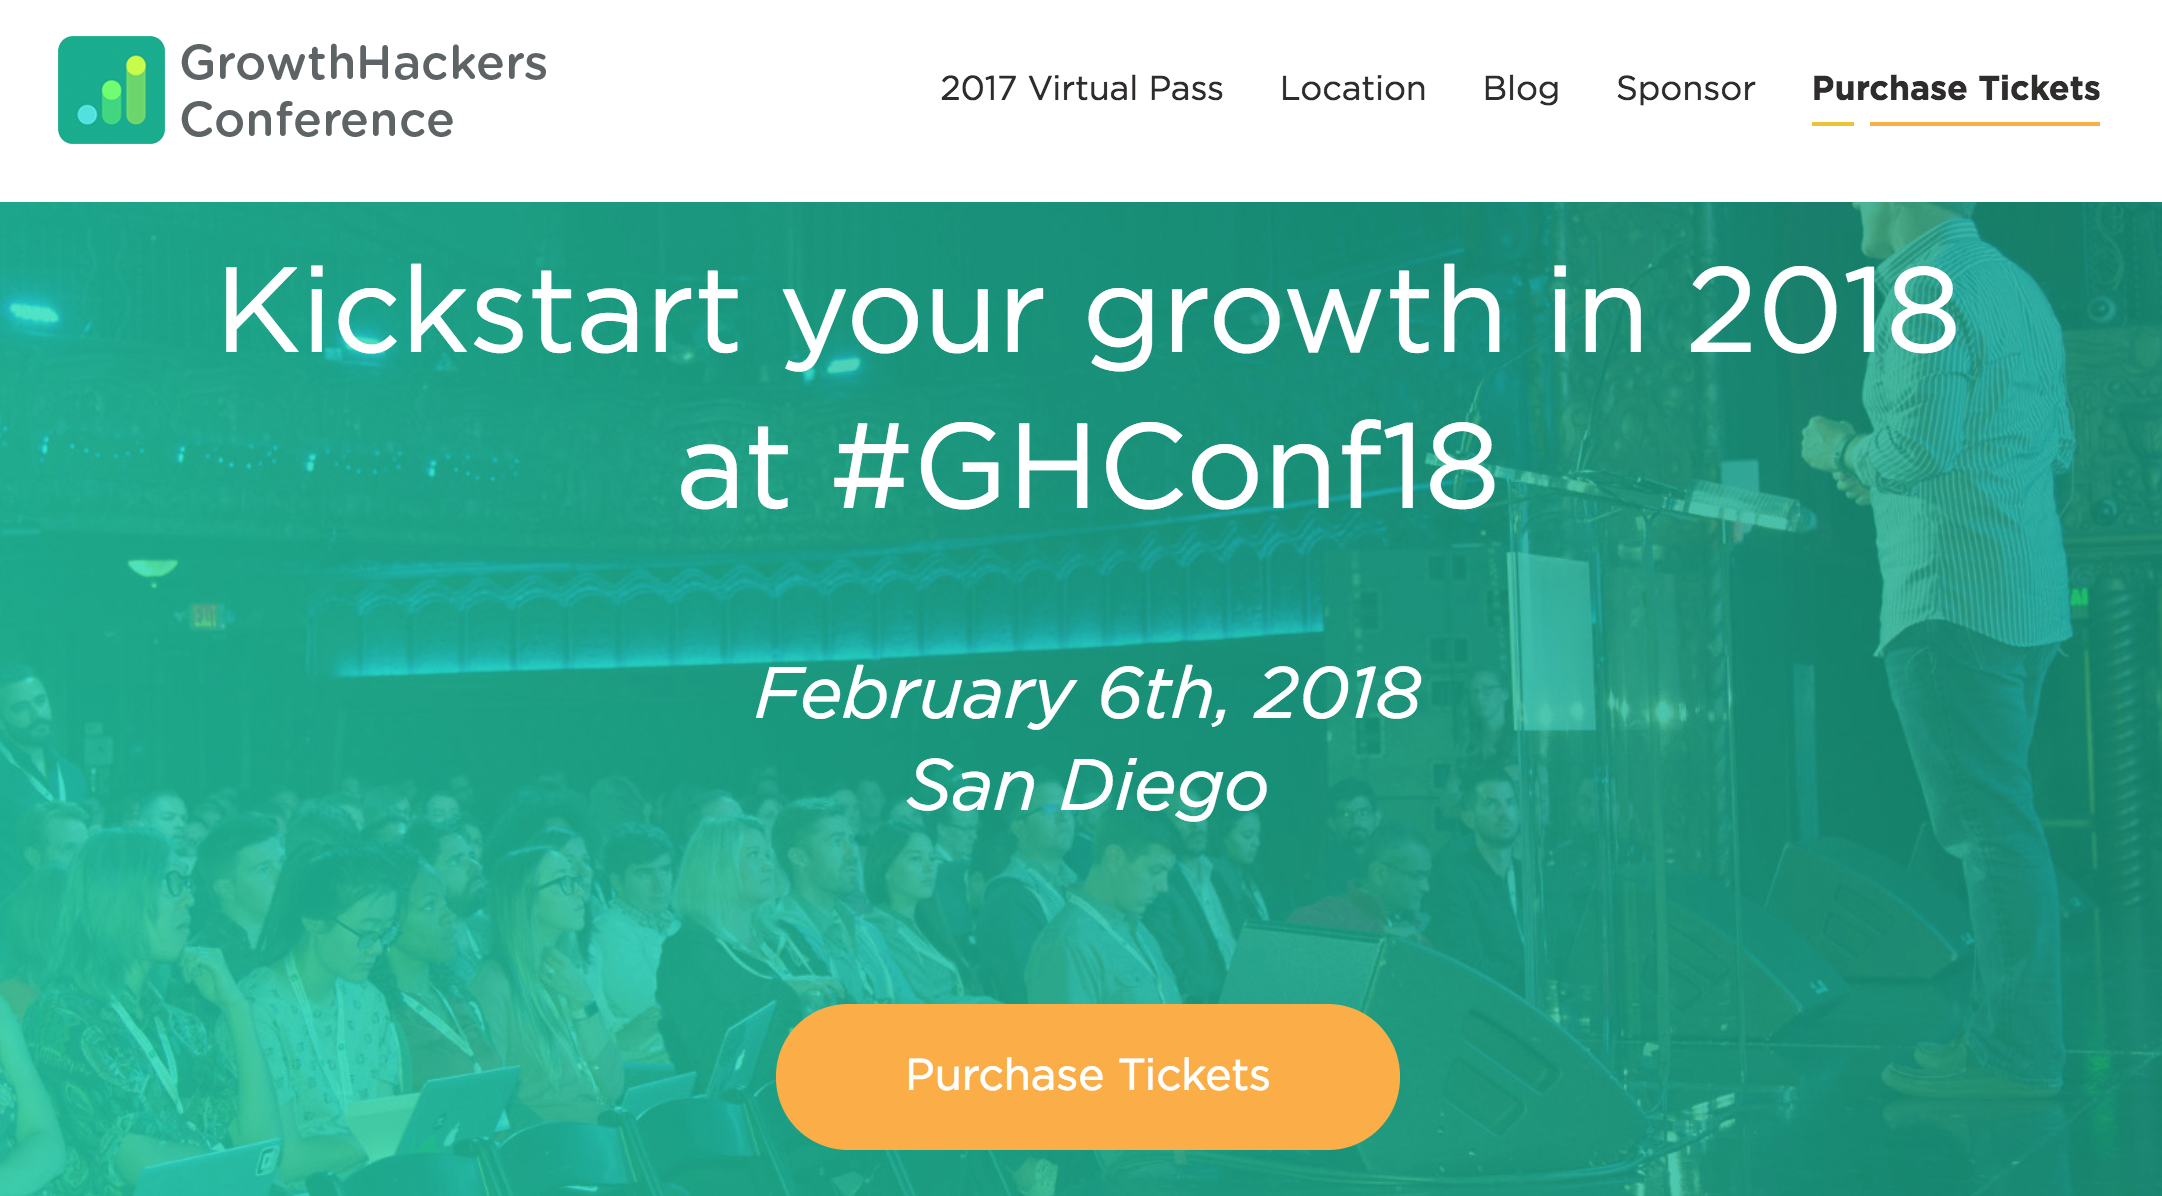 growthhackers-conf-2017.png